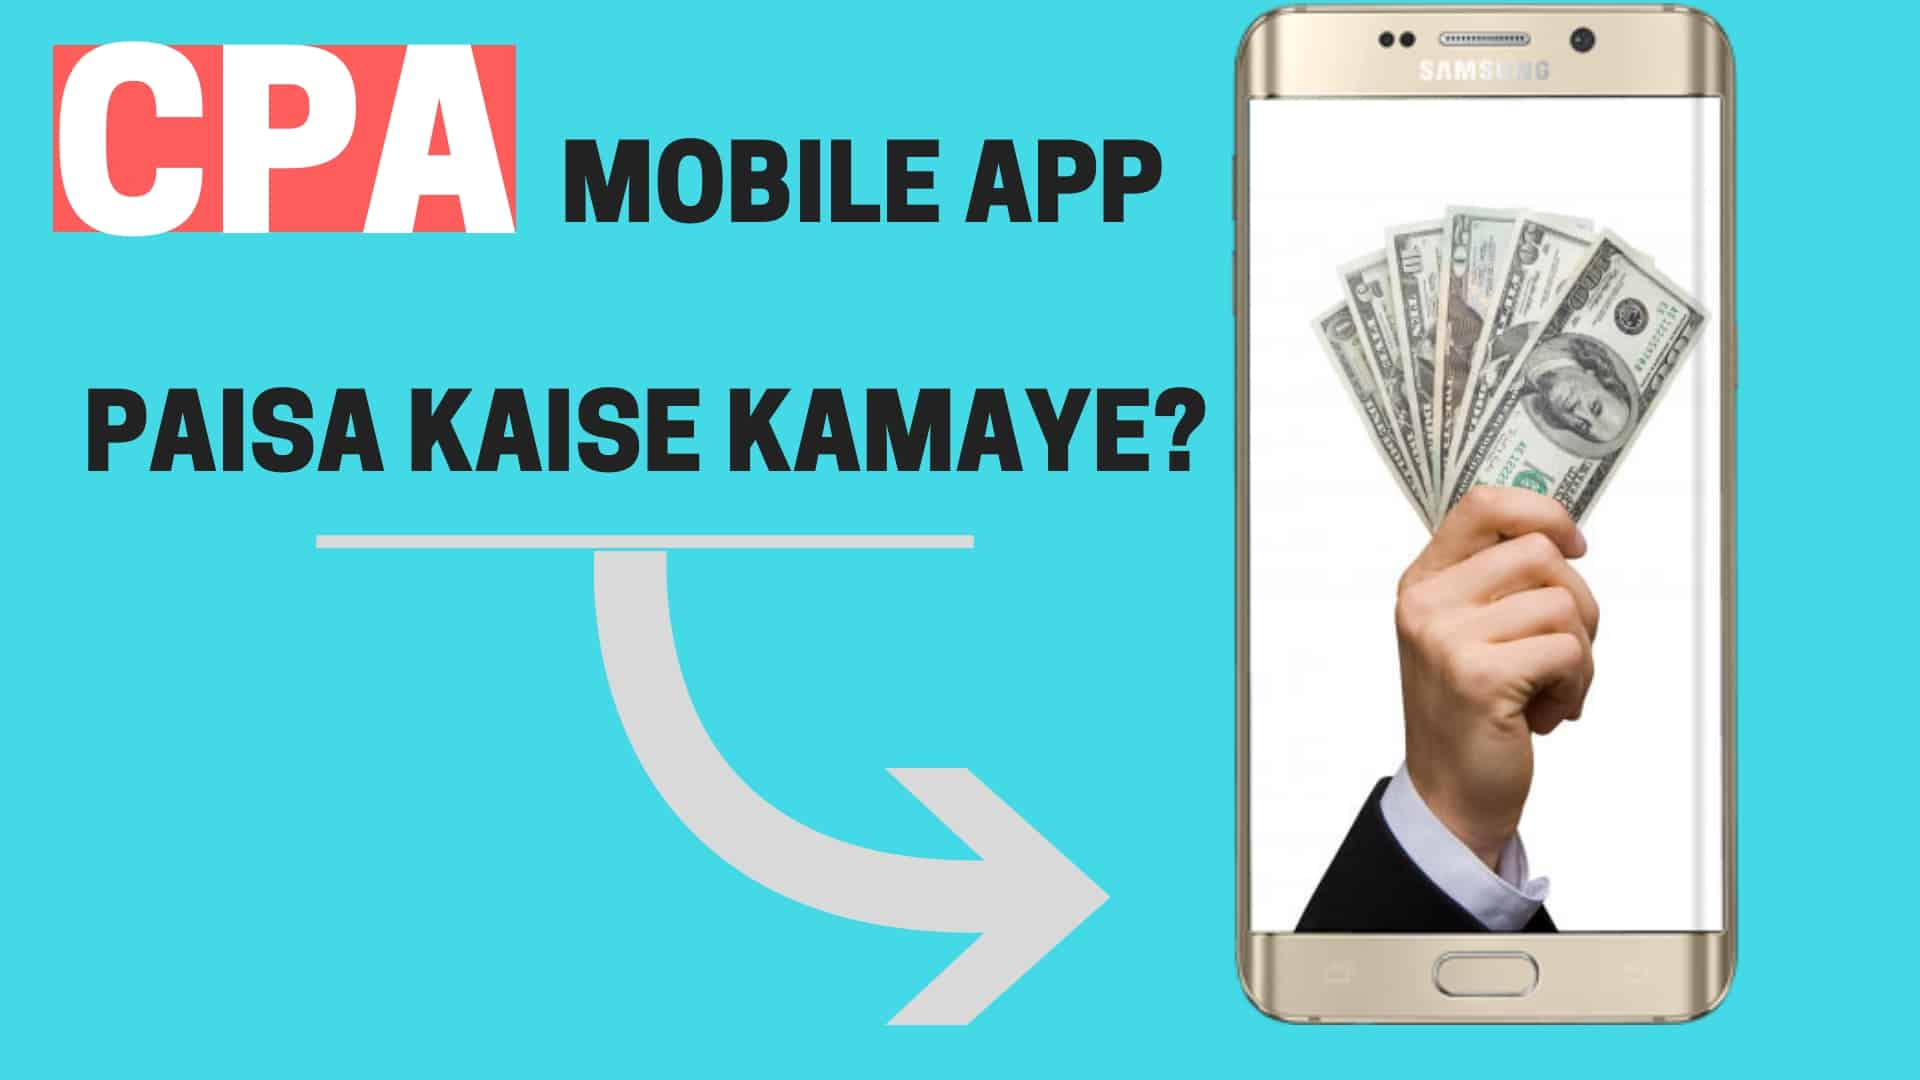 CPA Mobile App Se Earning Kaise Kare?